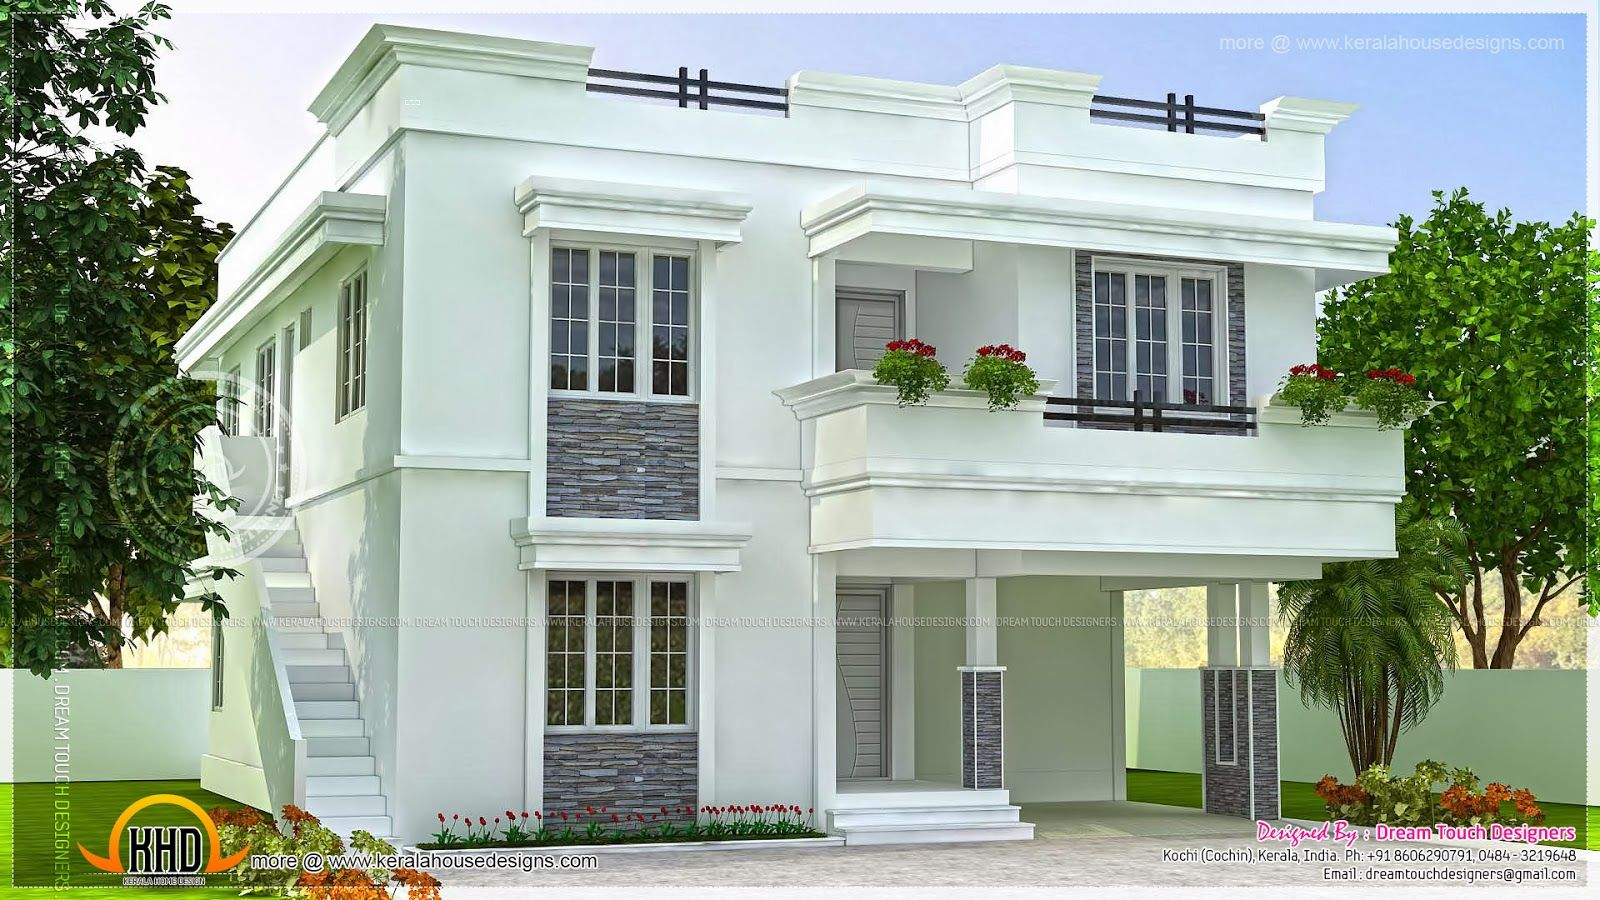 Modern beautiful home modern beautiful home design indian for Home front design model